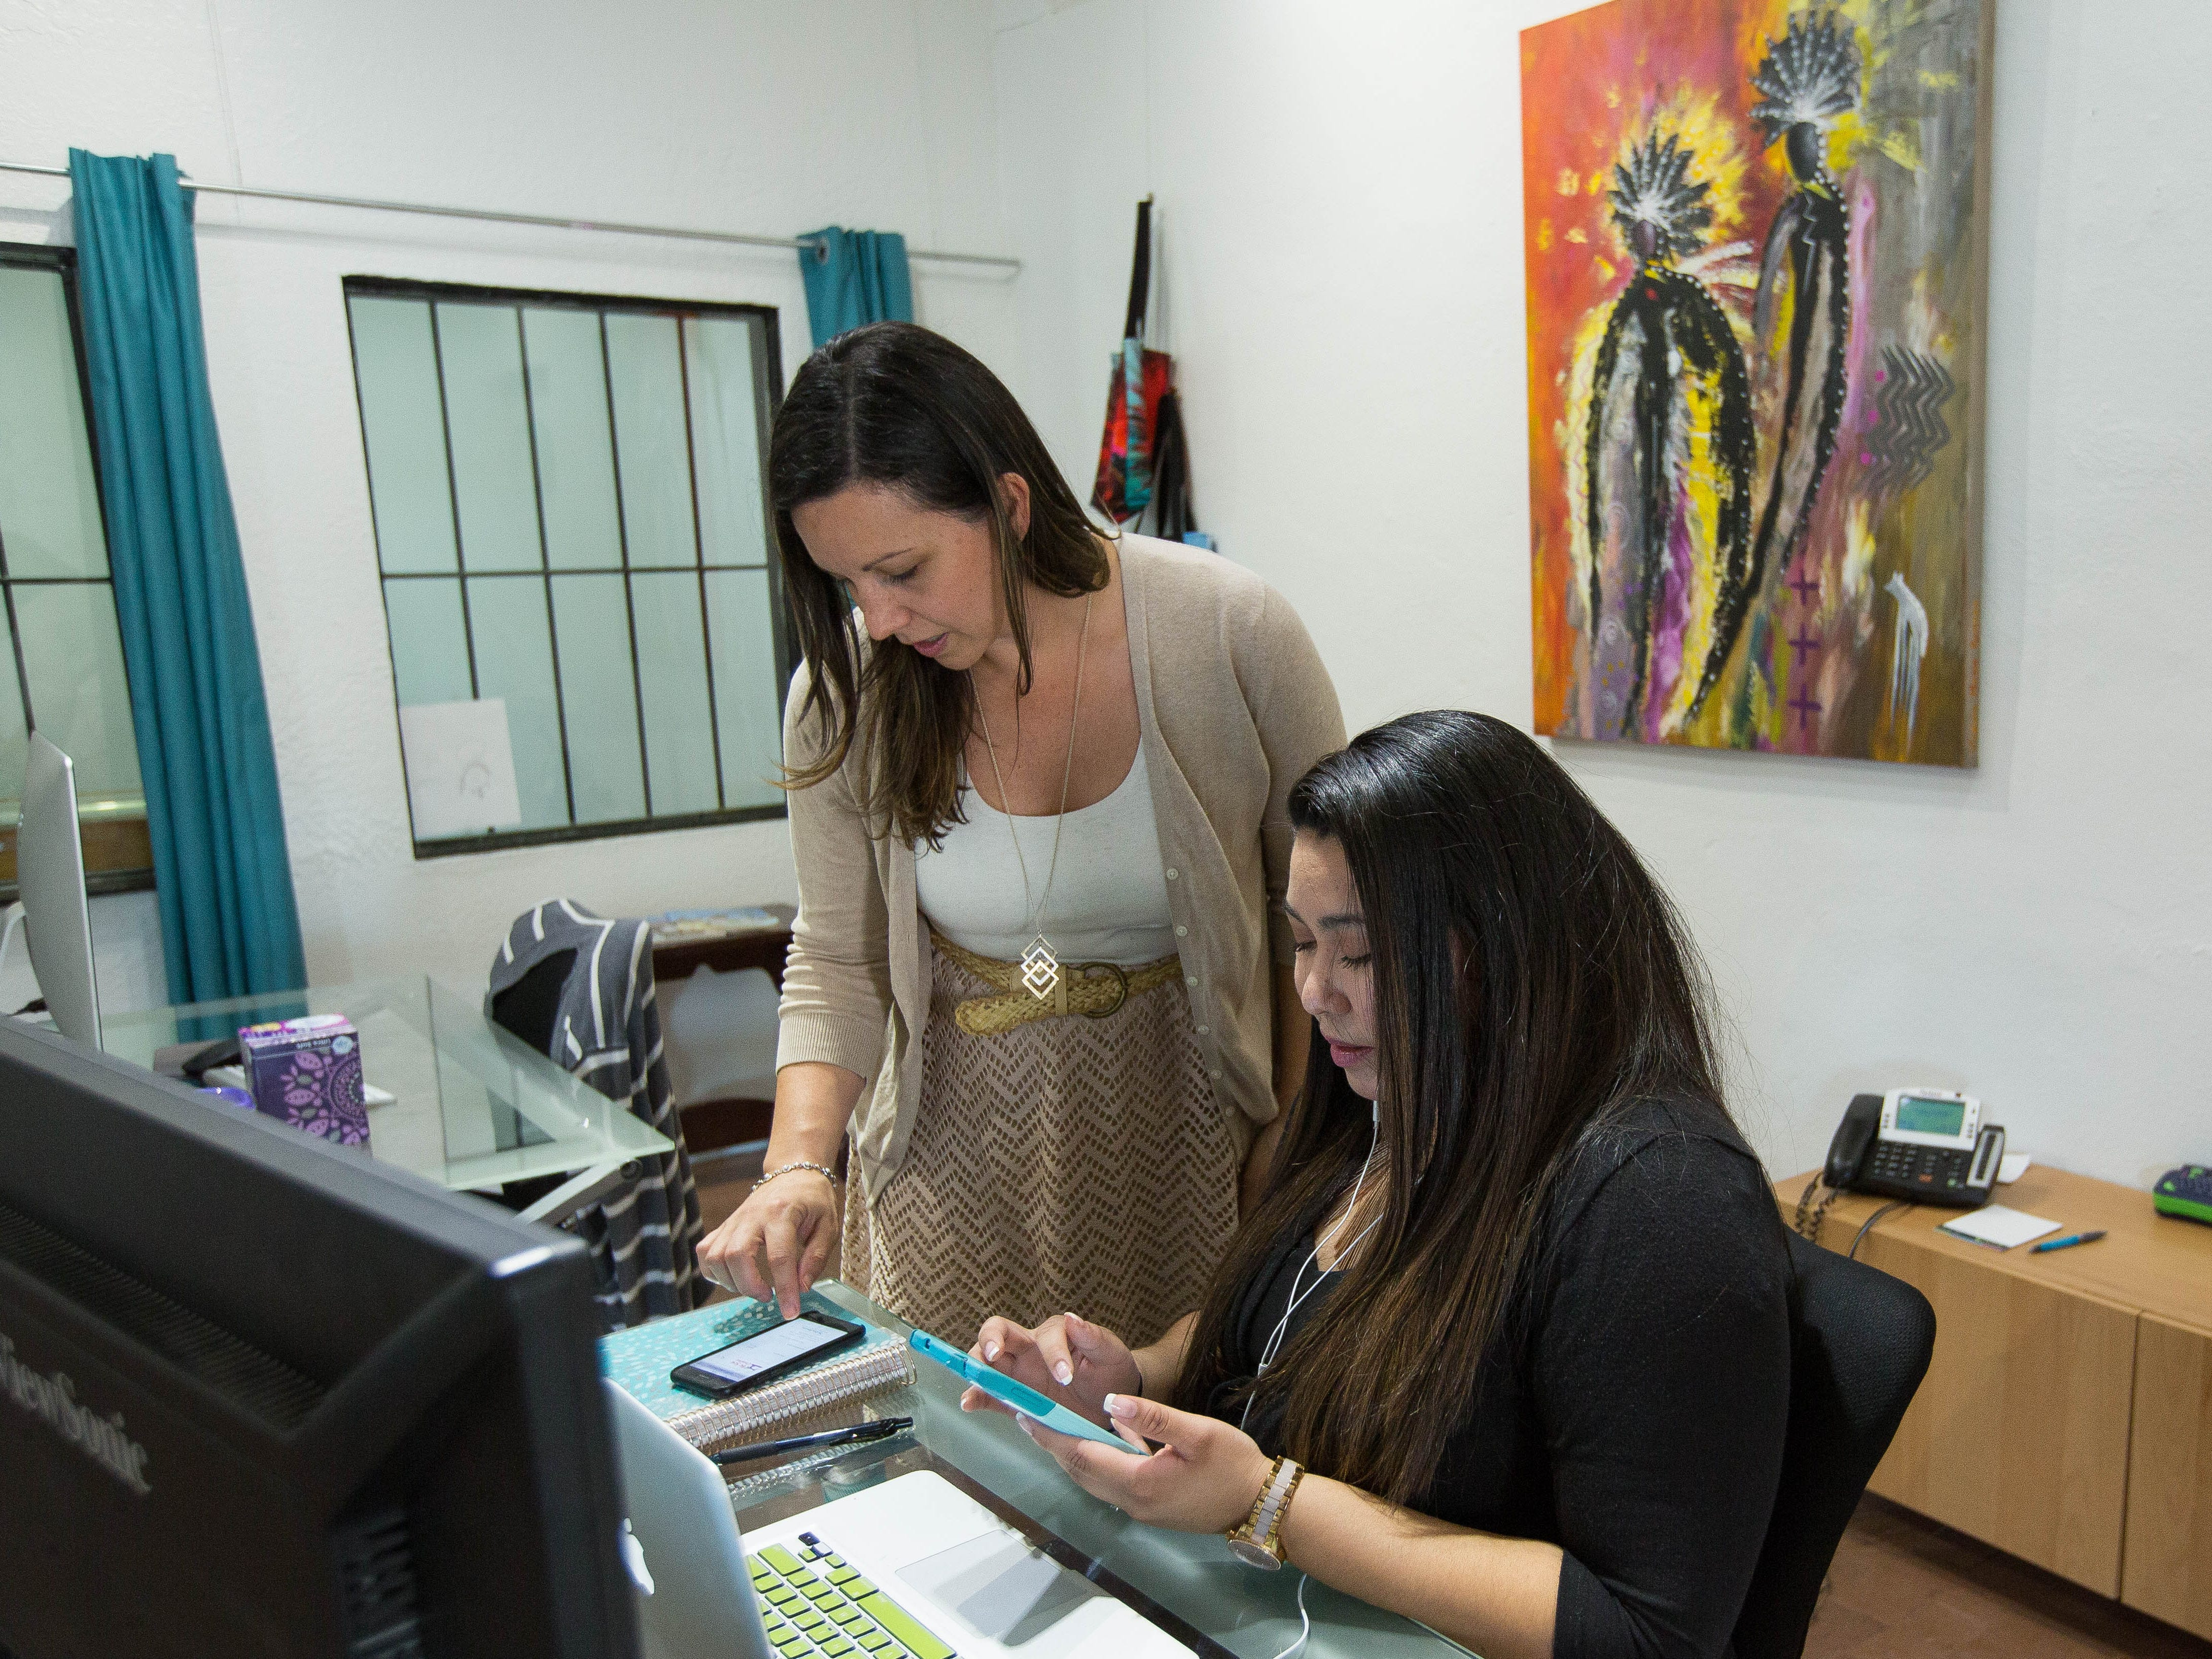 Leah Messina, left, CEO of Sinuate Media, and marketing manager Isabella Pedicone discuss web marketing at the marketing firm's new base of operation in Mesilla on Friday, Aug. 31, 2018.